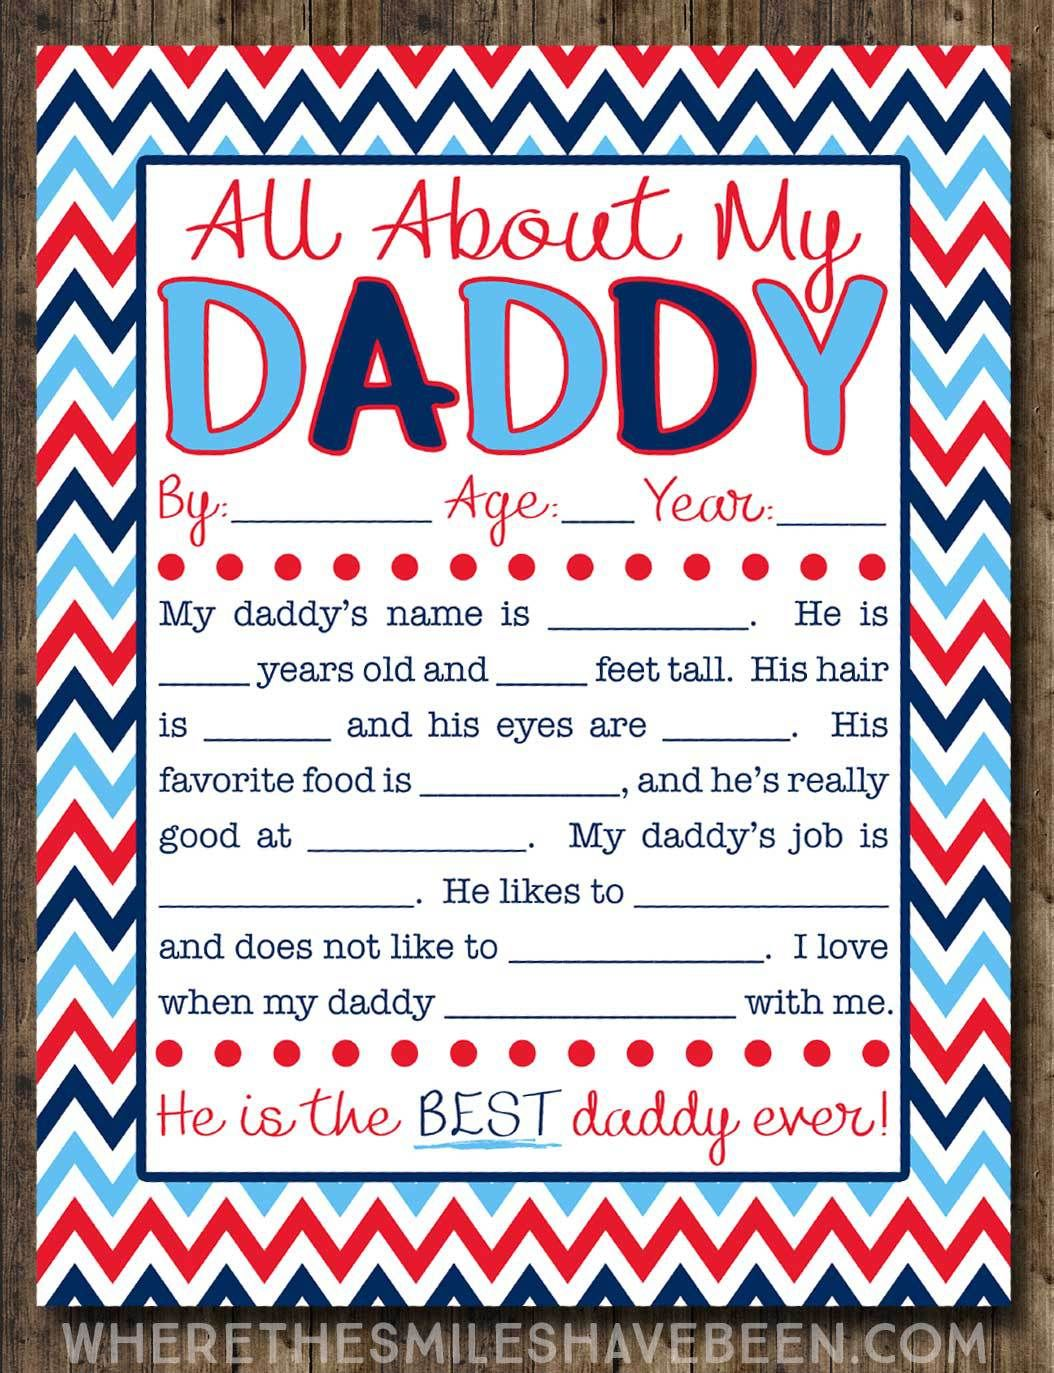 photograph regarding All About My Dad Free Printable named All Pertaining to My Daddy Job interview with Free of charge Printable! Bloggers